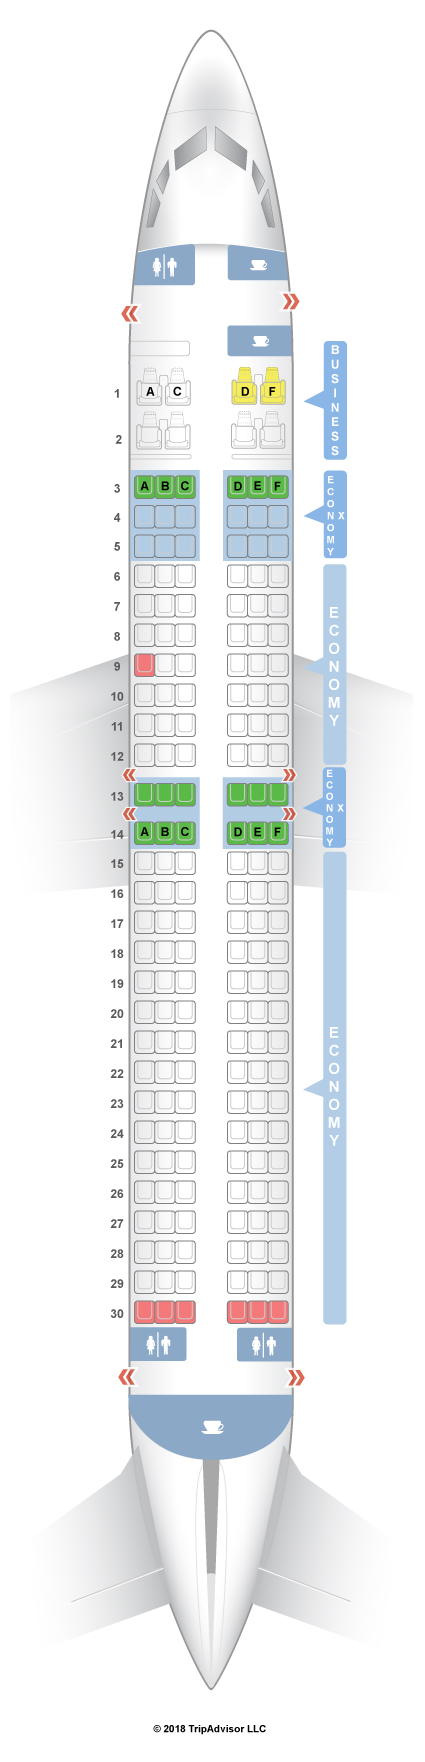 737-800 Seat Map SeatGuru Seat Map Virgin Australia Boeing 737 800 (73H) 737-800 Seat Map